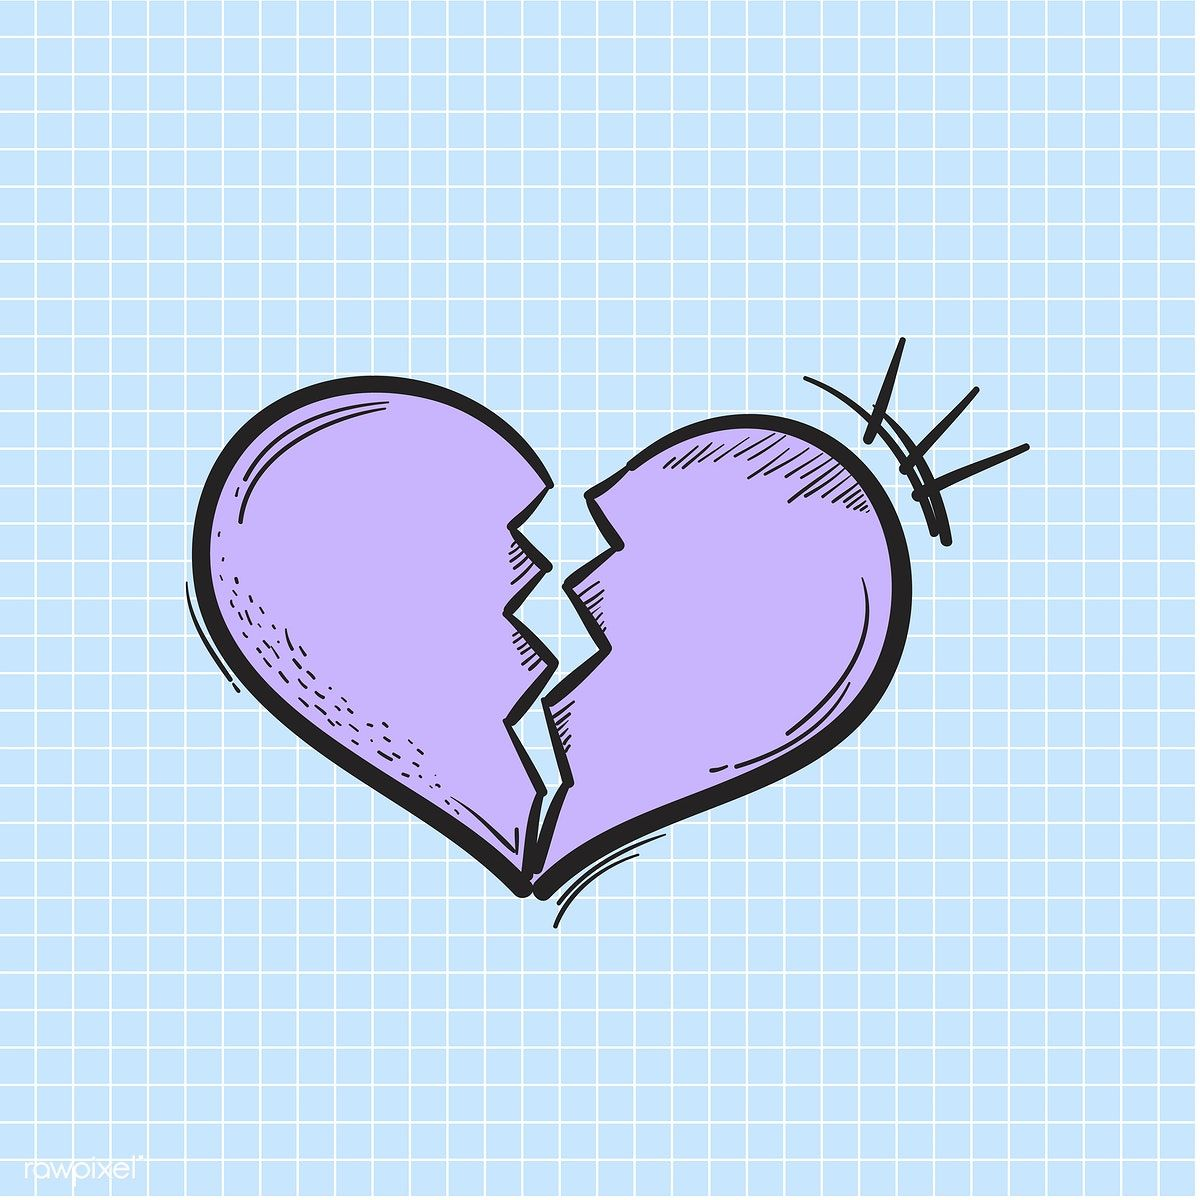 Vector of heart broken icon free image by